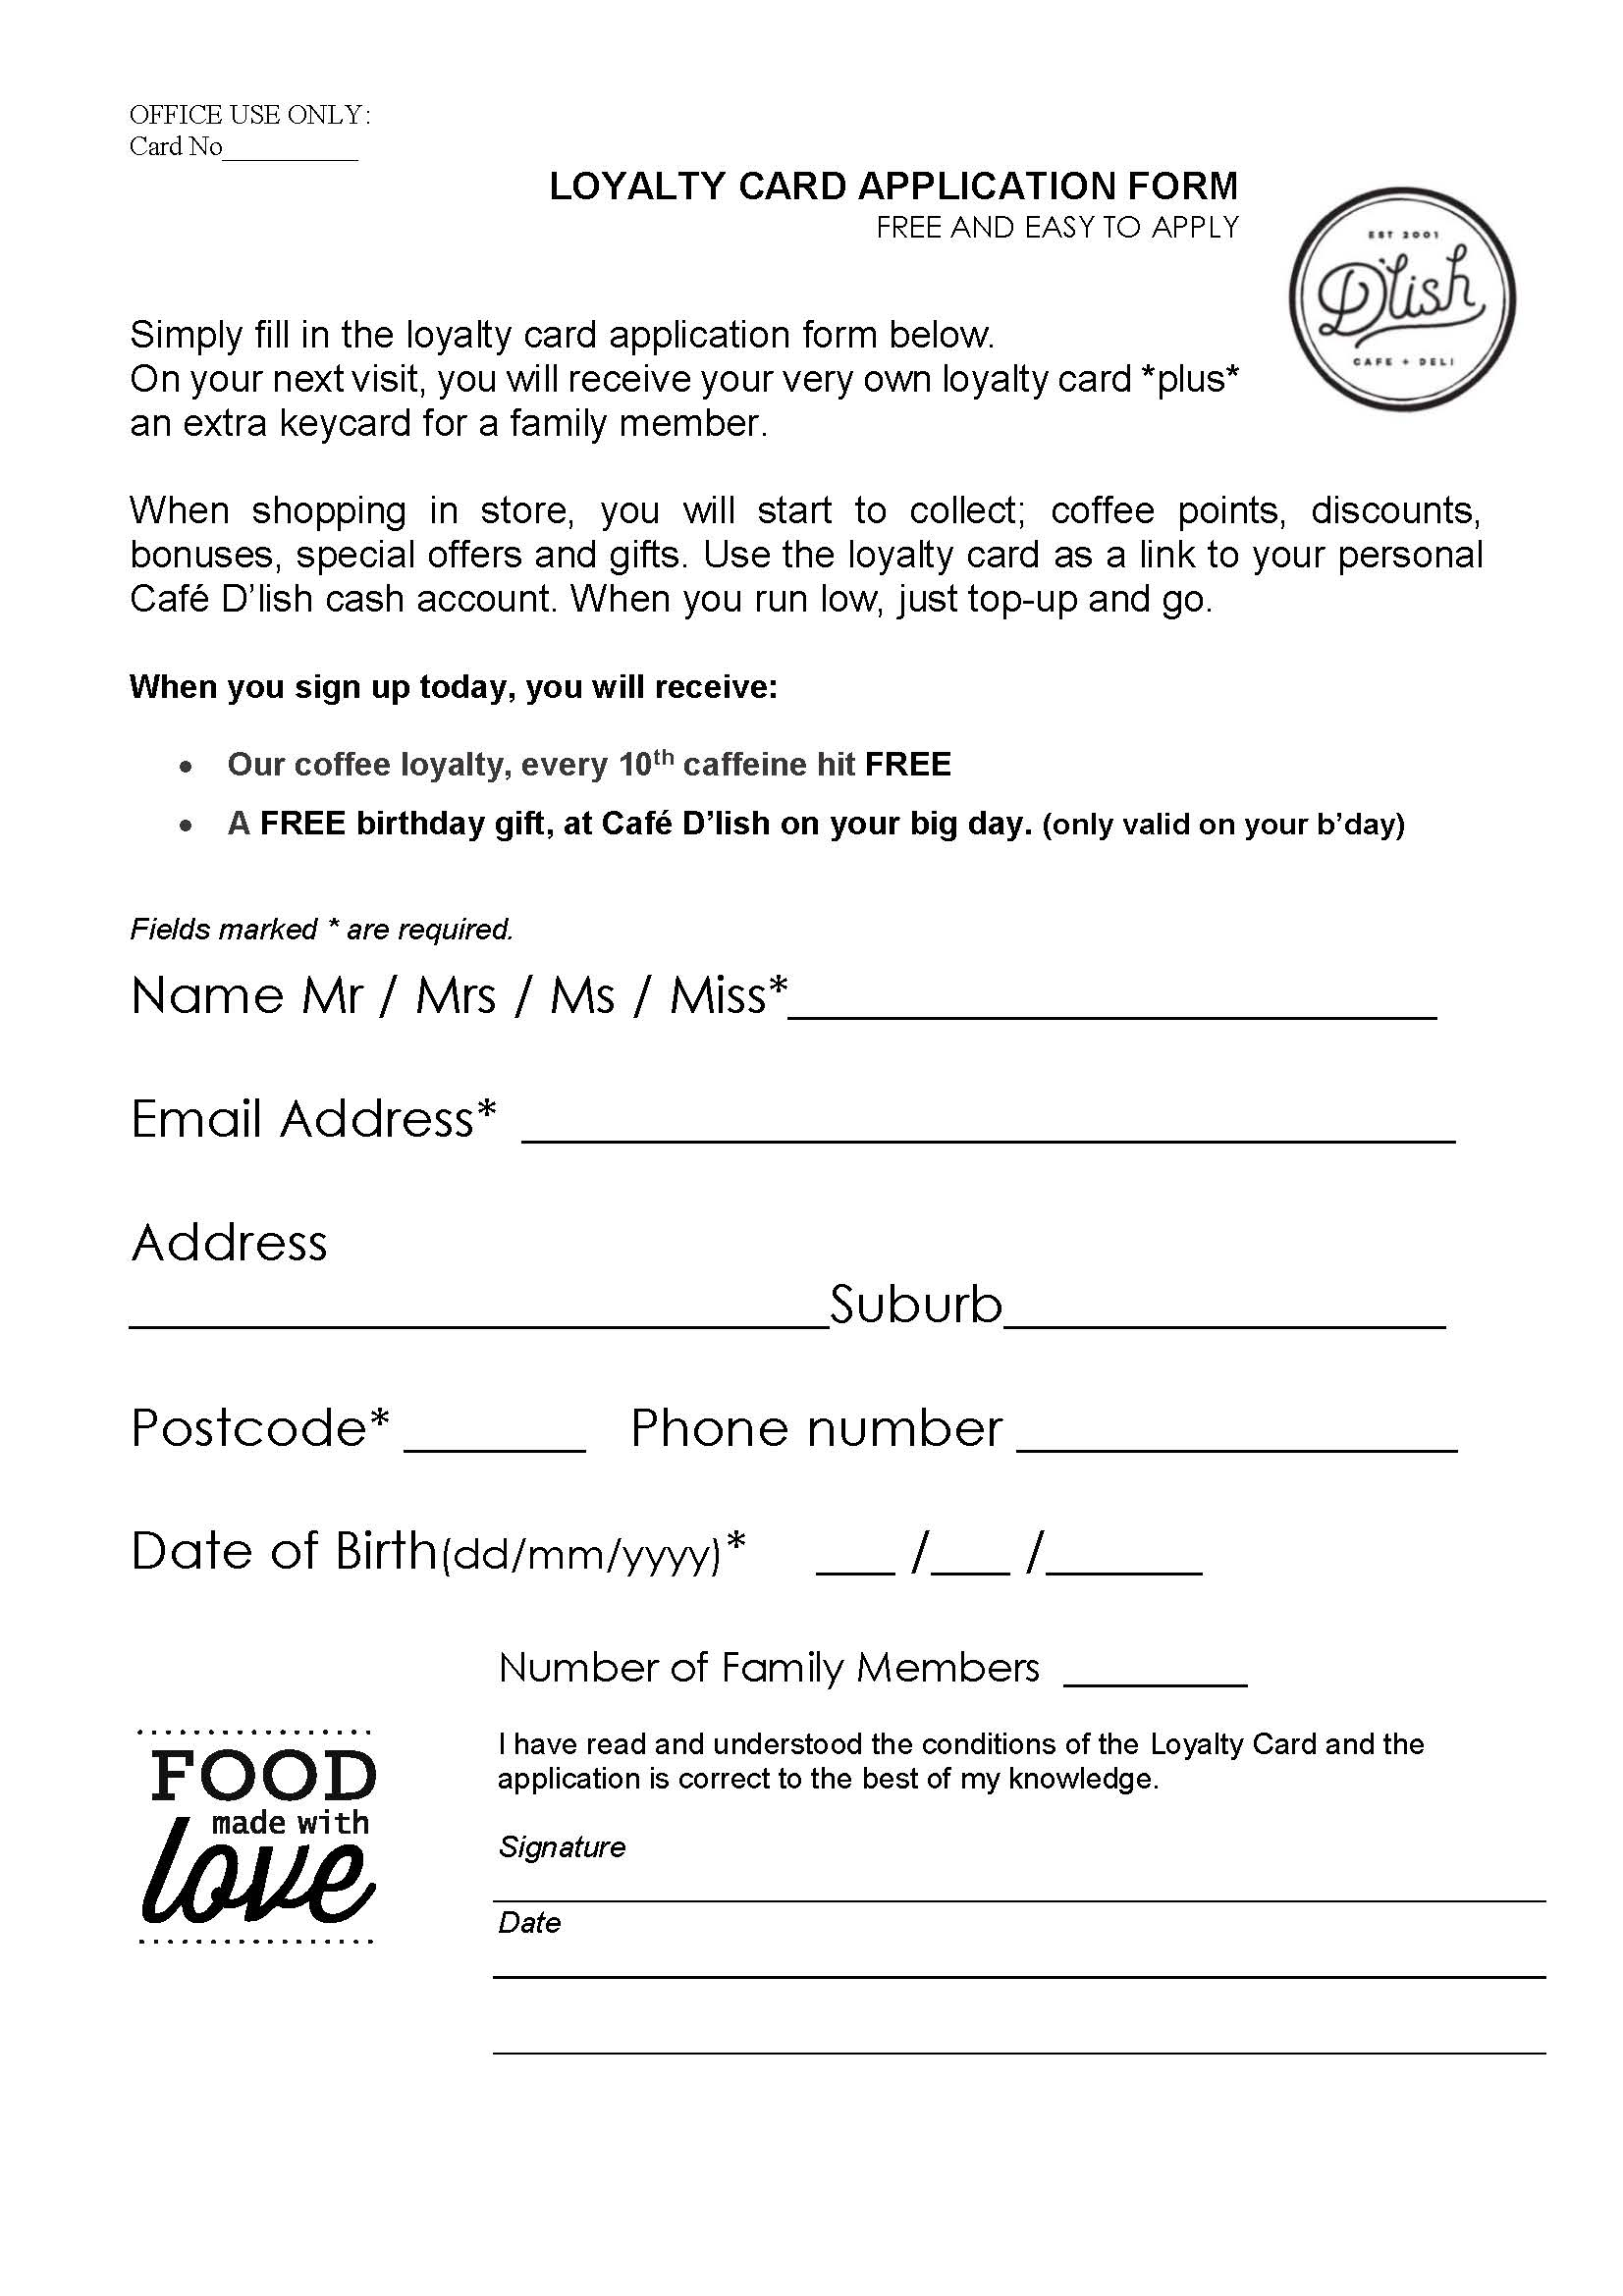 loyalty card application form (Feb 18)